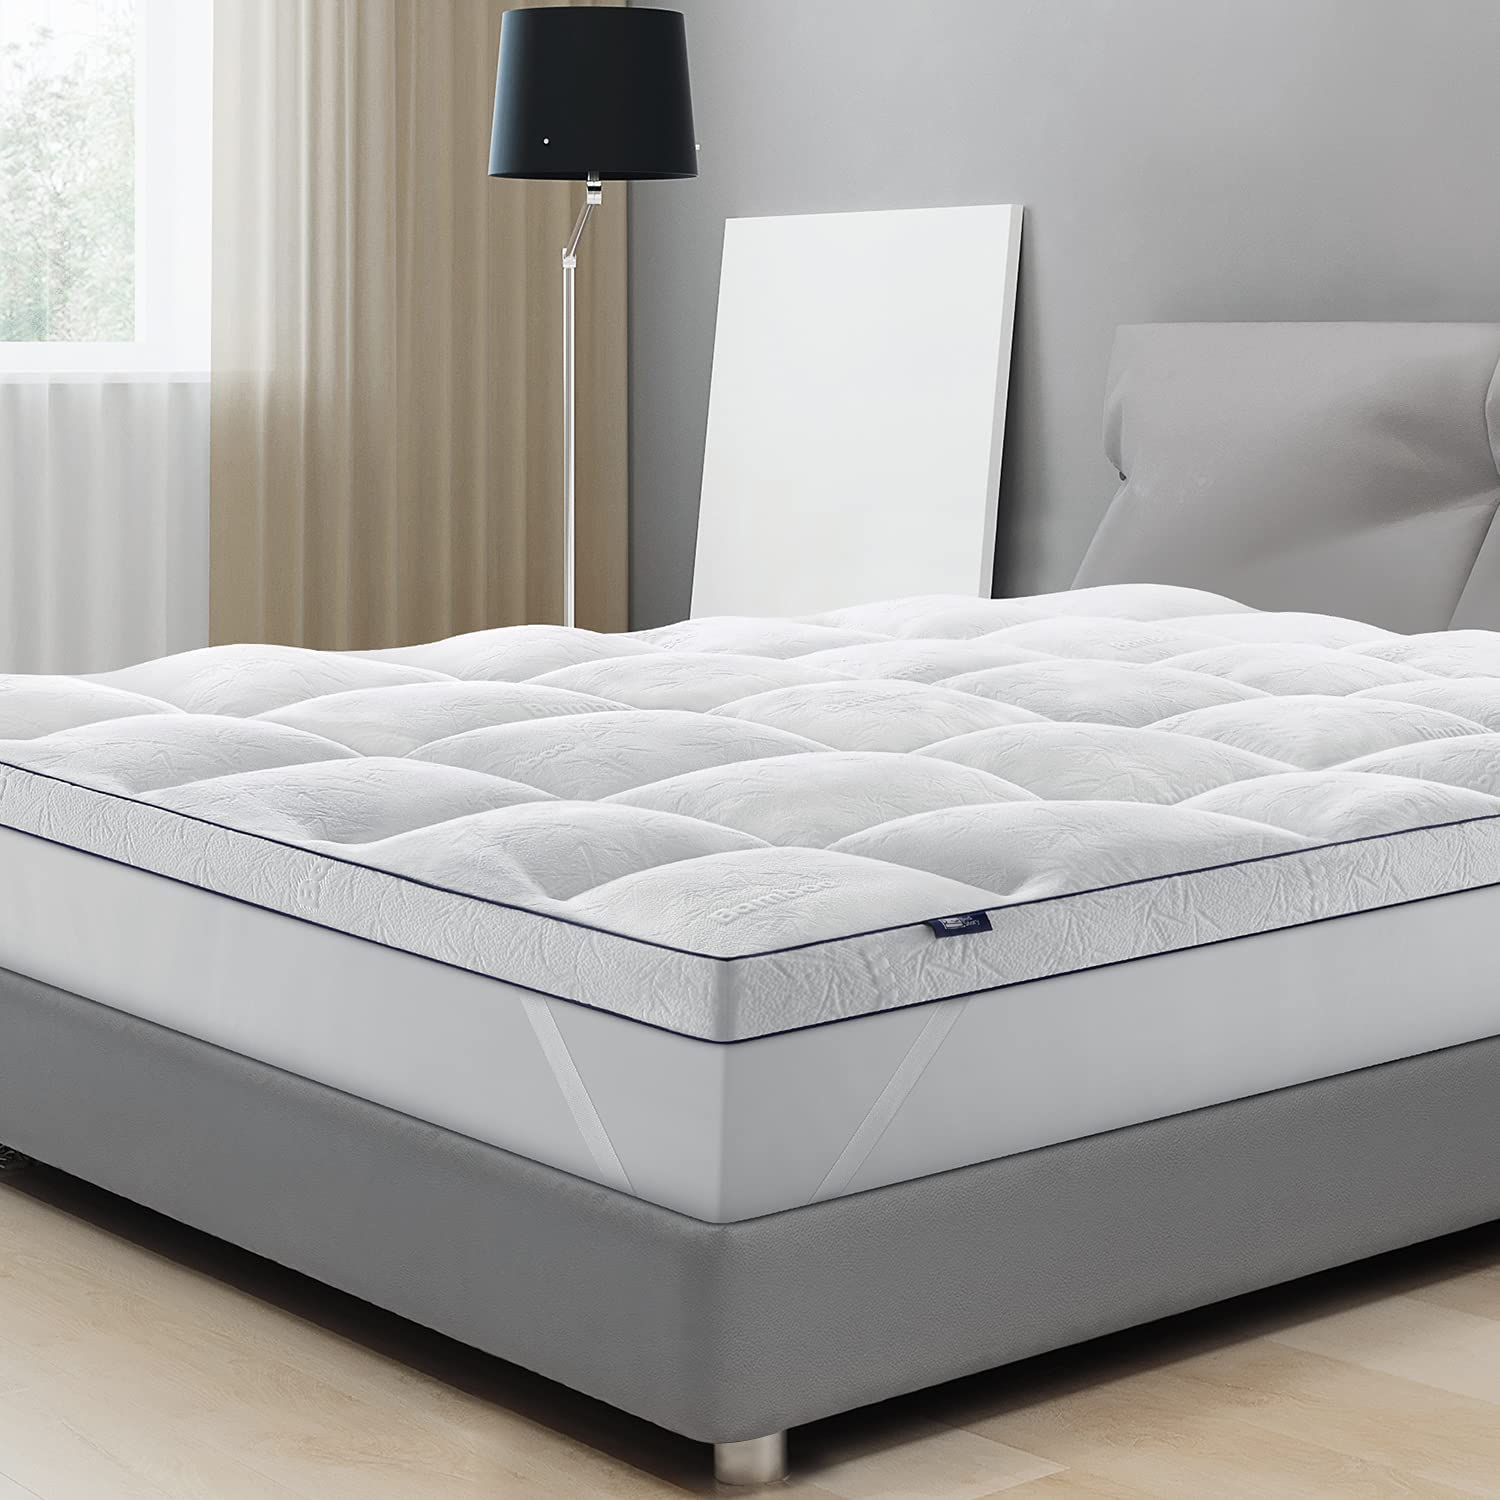 BedStory Bamboo Mattress Topper Queen Mattr Cooling Extra Discount mail order Deluxe Thick